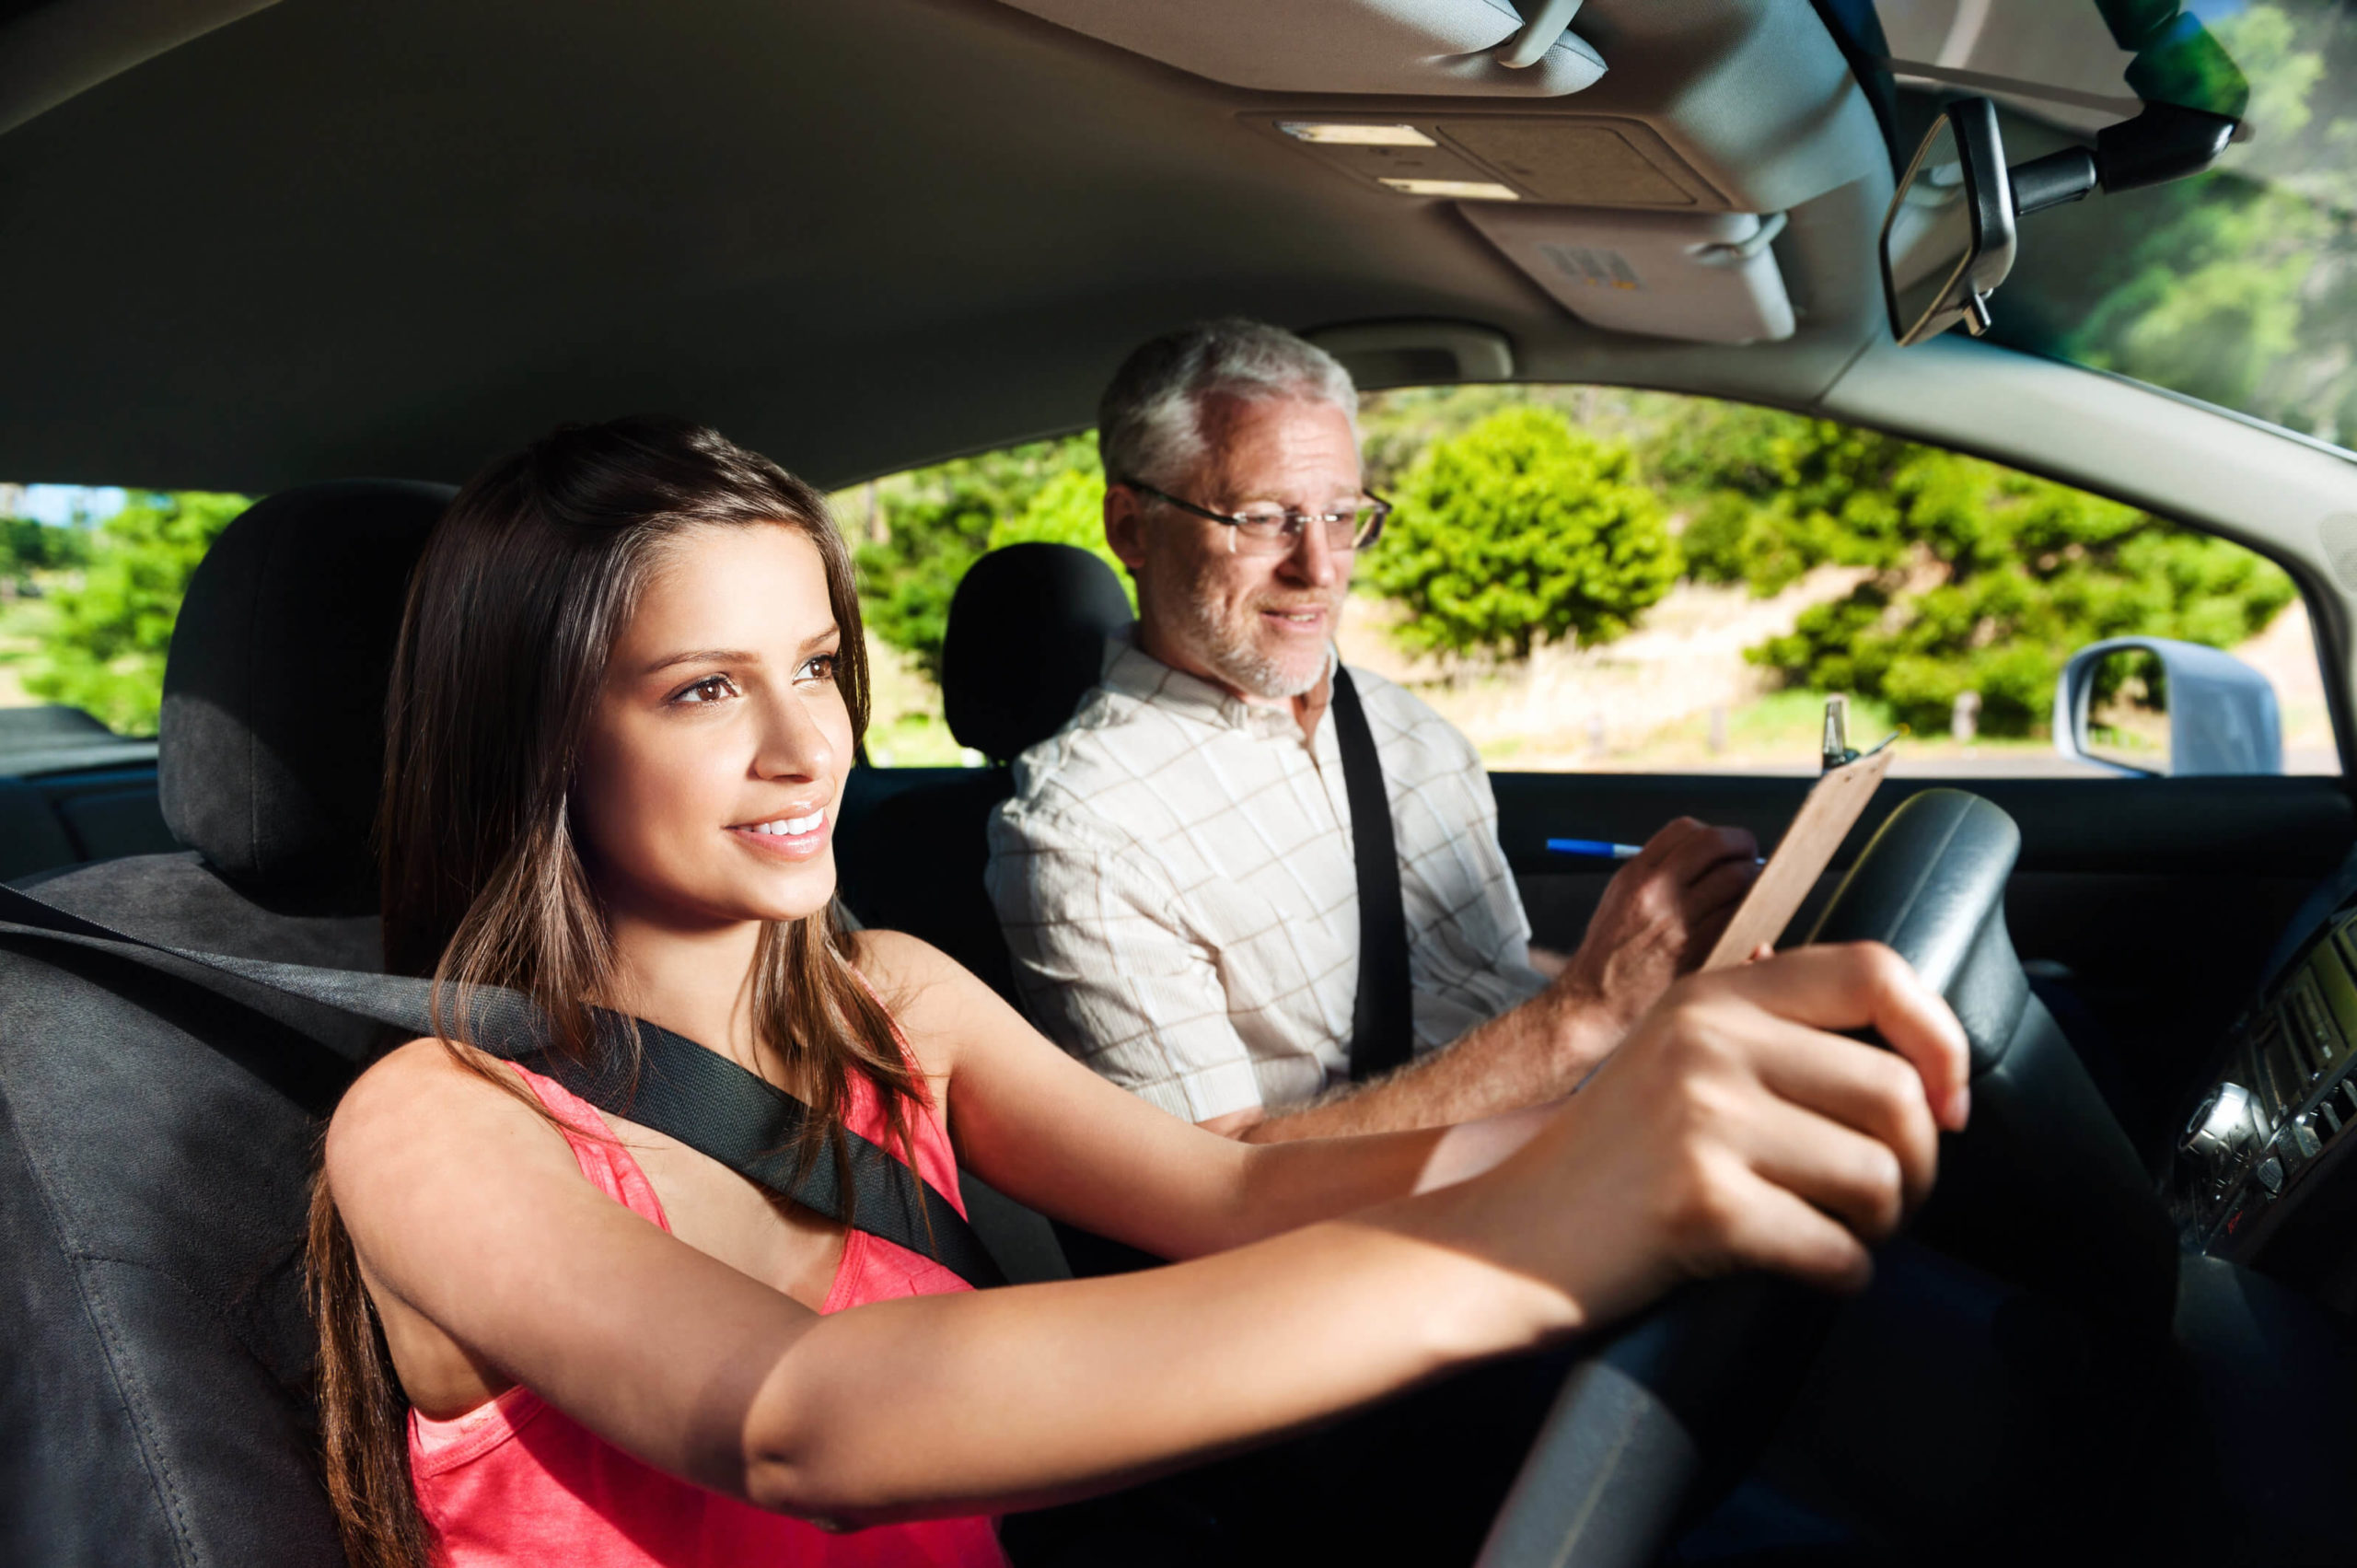 Choose Pass First Go Driving Lessons To Drive Safely